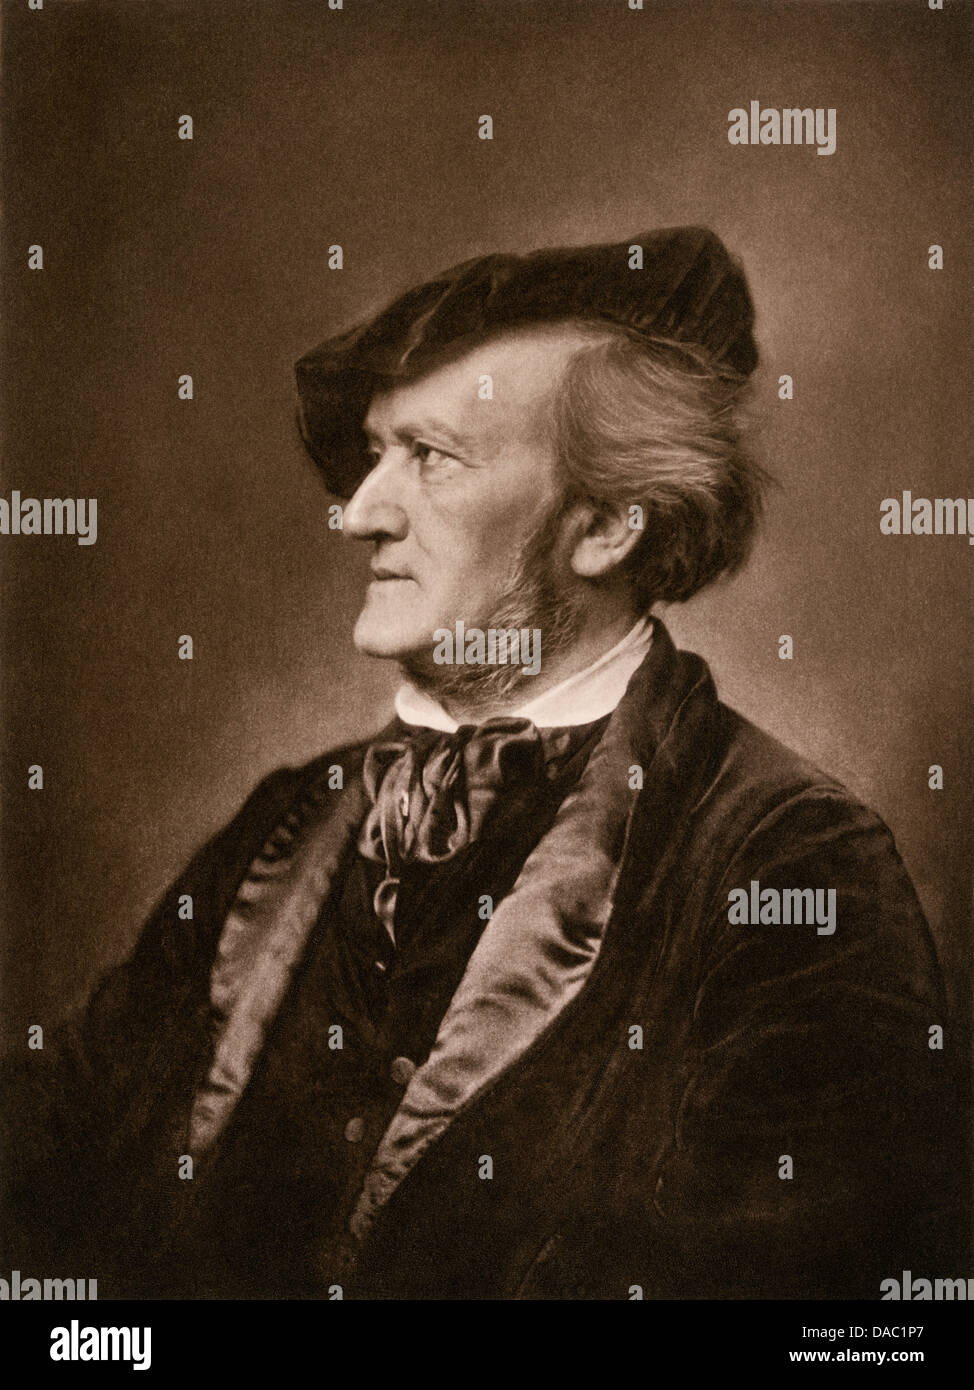 Portrait of composer Richard Wagner. Photogravure - Stock Image